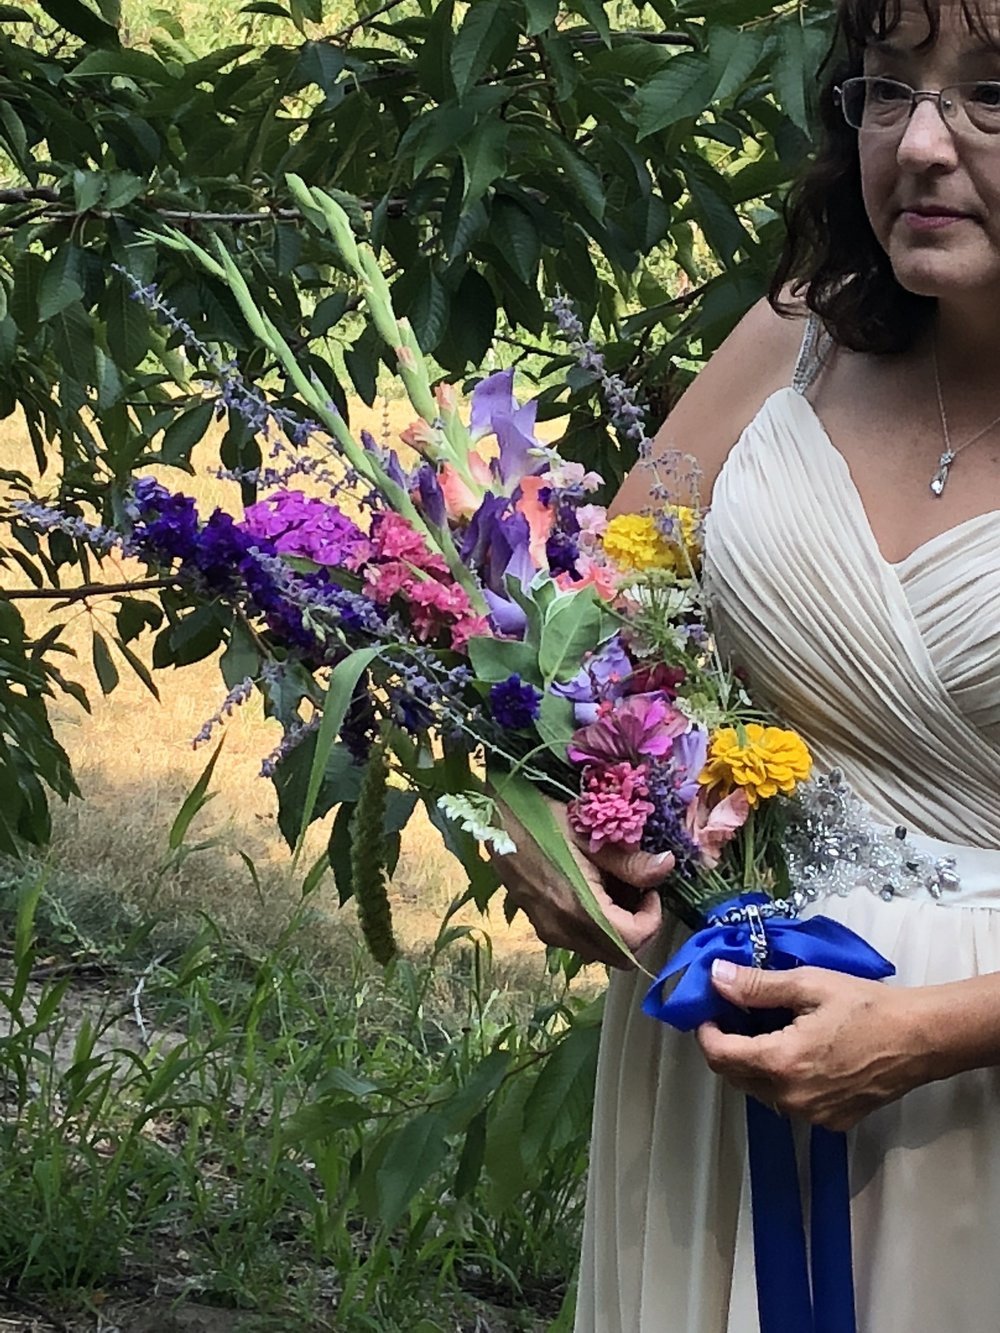 8/16/2018 ~ Denise came and picked her own flowers the day before her wedding, and made her own bouquet!